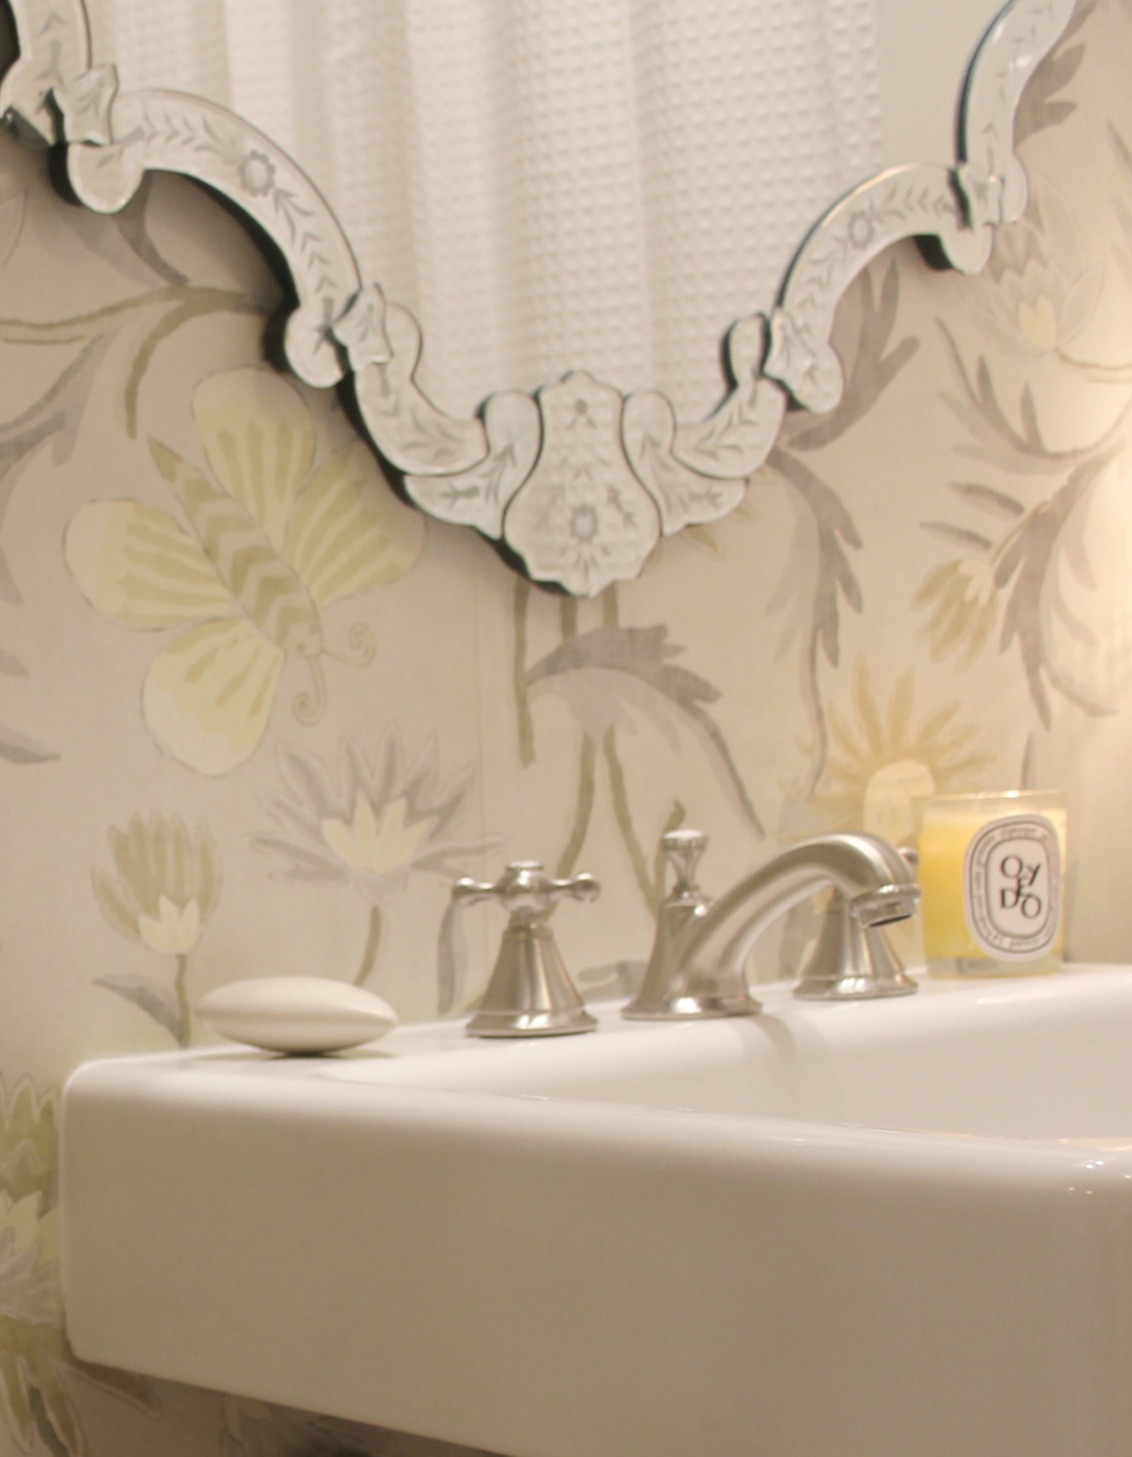 Cheery And Neutral Thibaut Wallpaper In A Classic Bathroom With Seabury Widespread Faucet Grohe